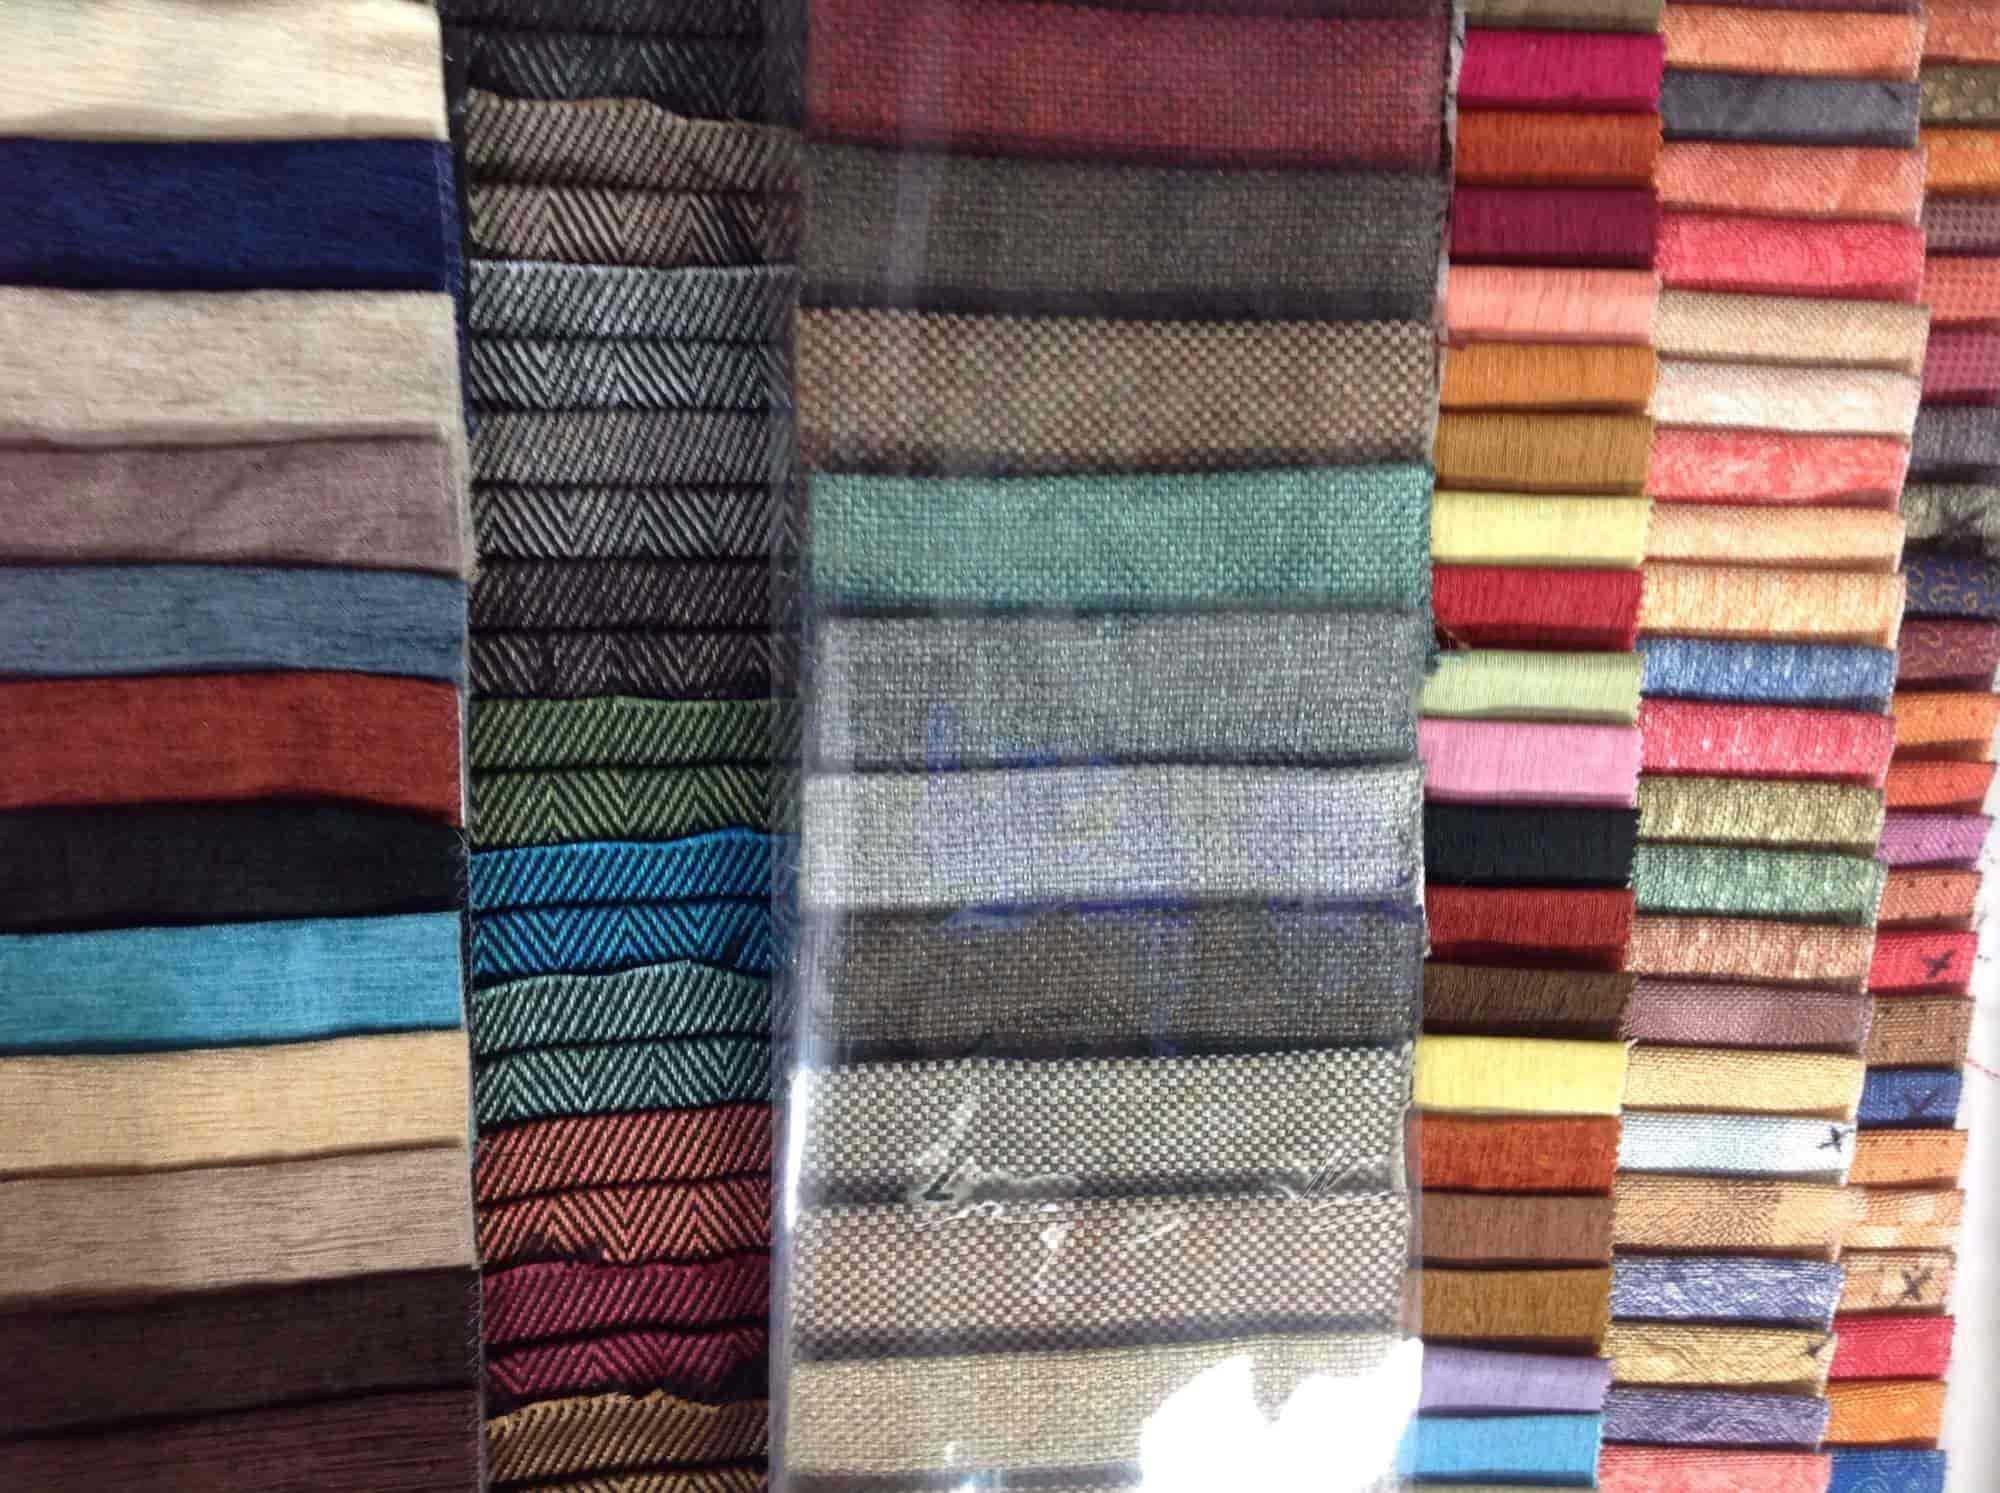 China Fabric Suppliers In Delhi Indian Stores Photos Chandni Chowk Delhi Pictures